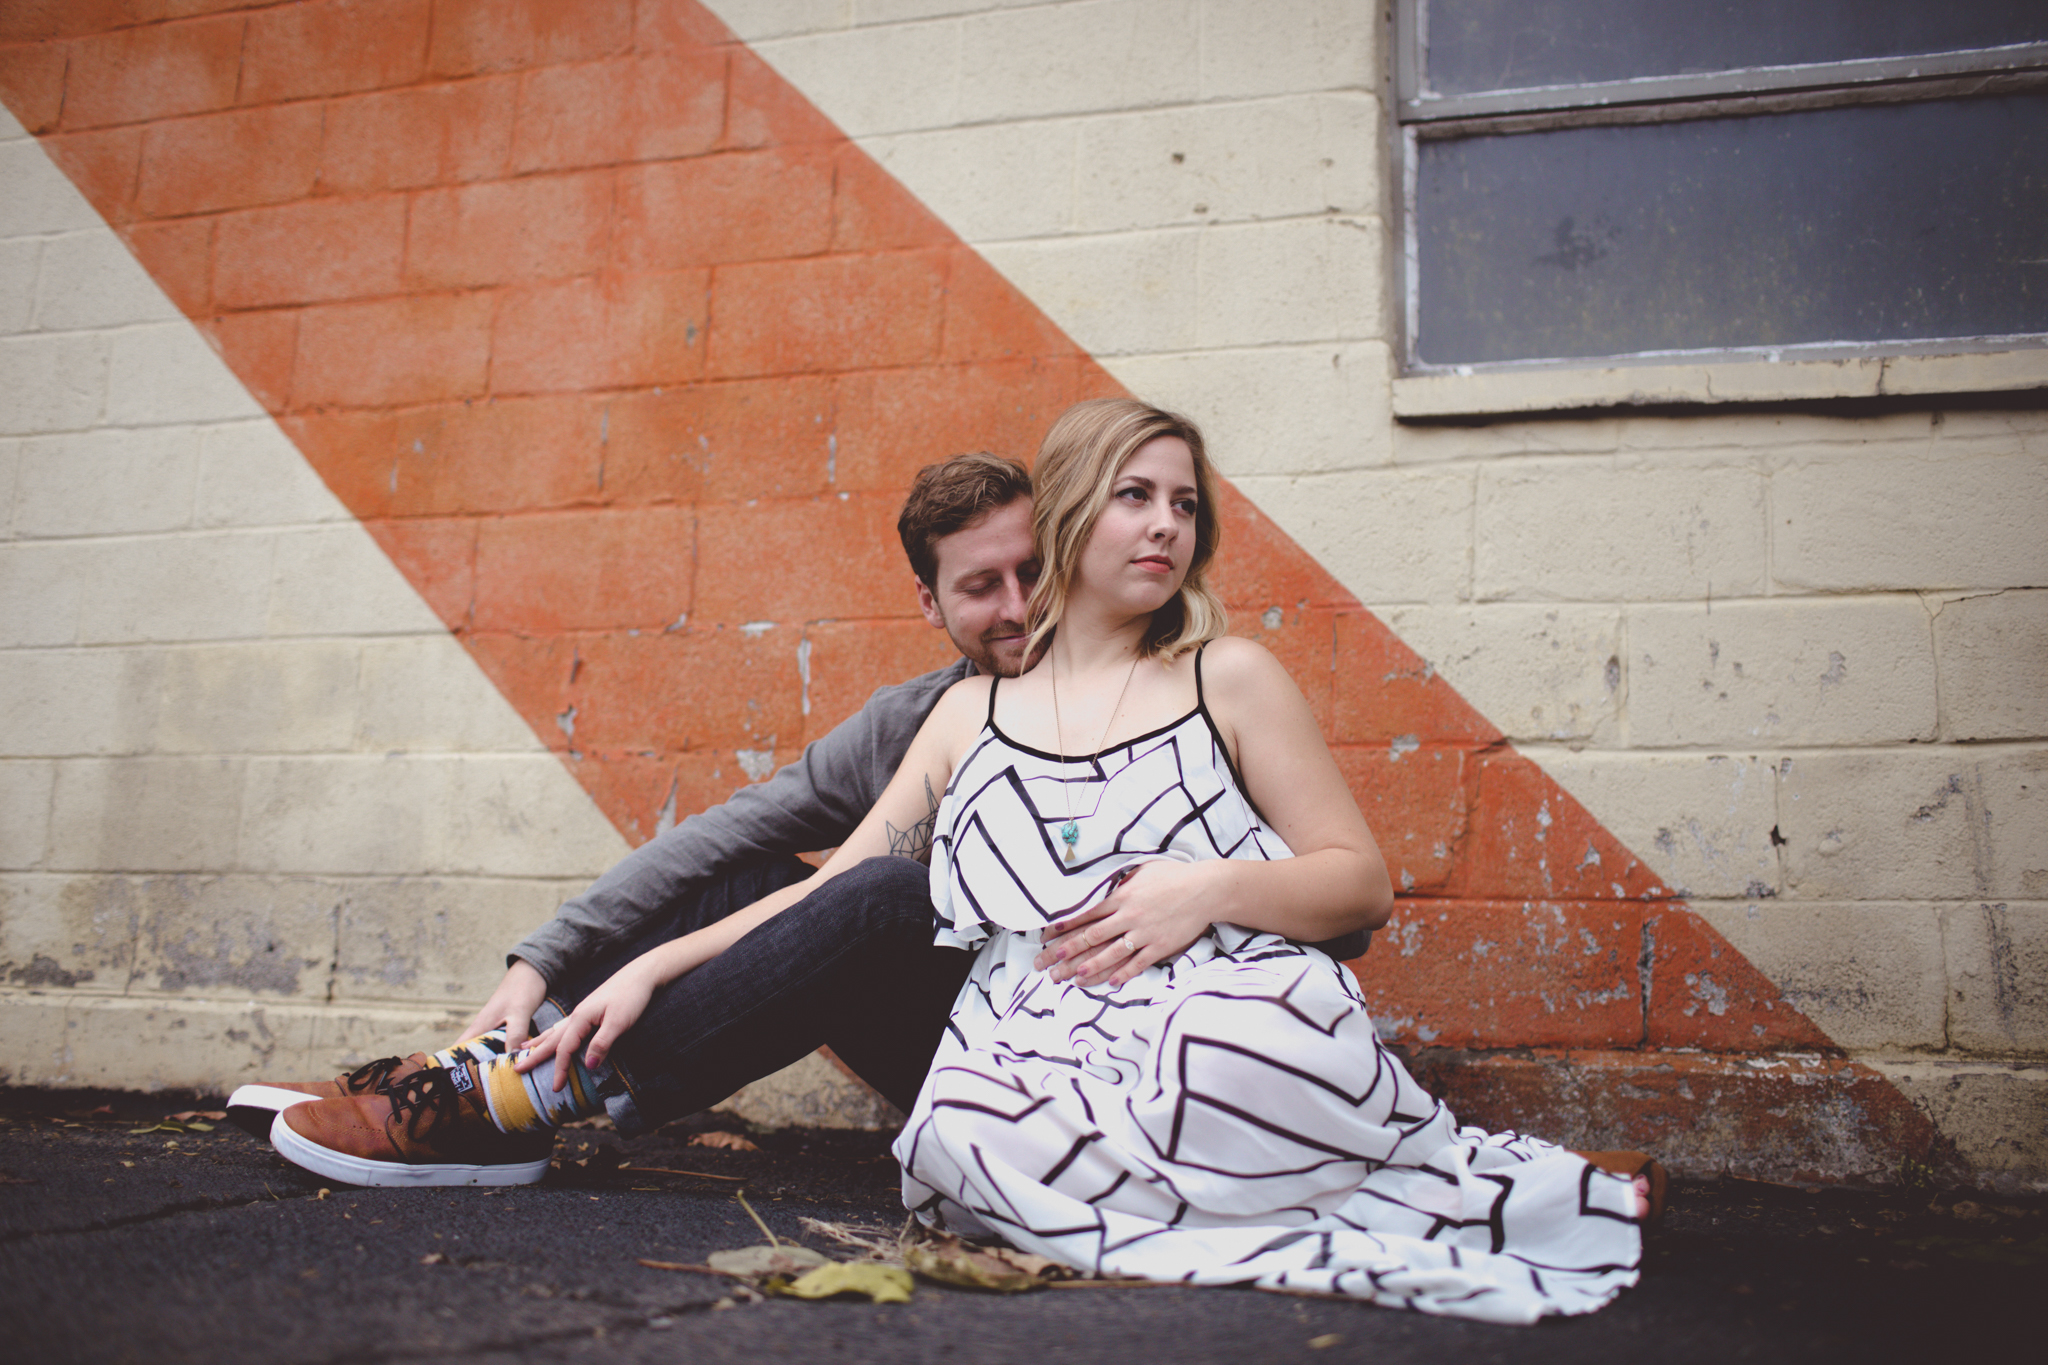 Cambria_Philly_Engagement_Photography-7611.jpg